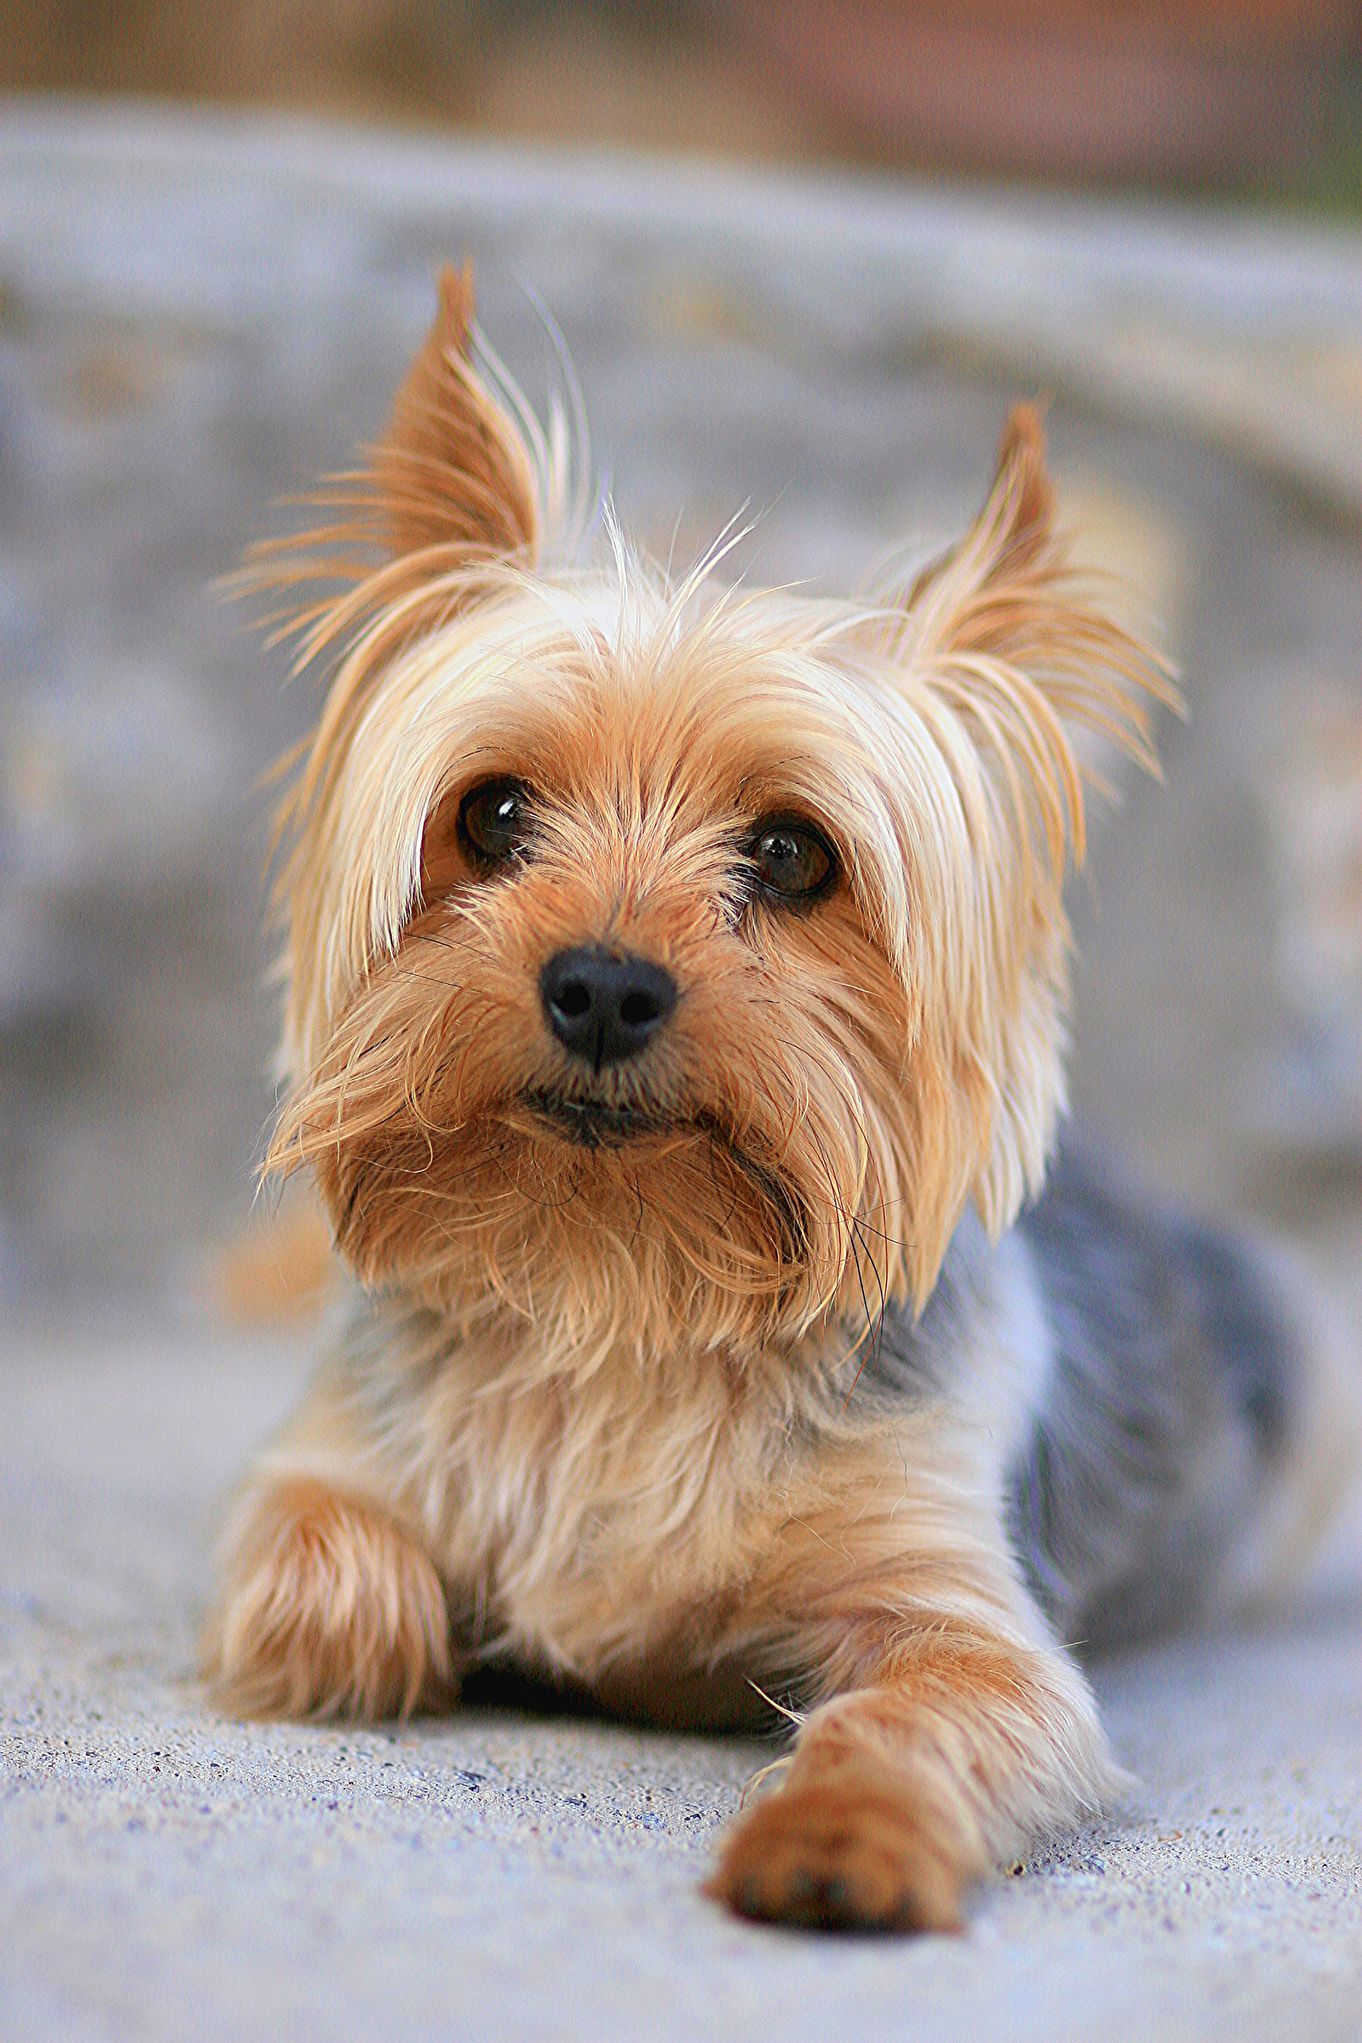 Adopt One Of These Hypoallergenic Dogs For Endless Cuddles Dog Breeds That Dont Shed Dog Breeds Yorkshire Terrier